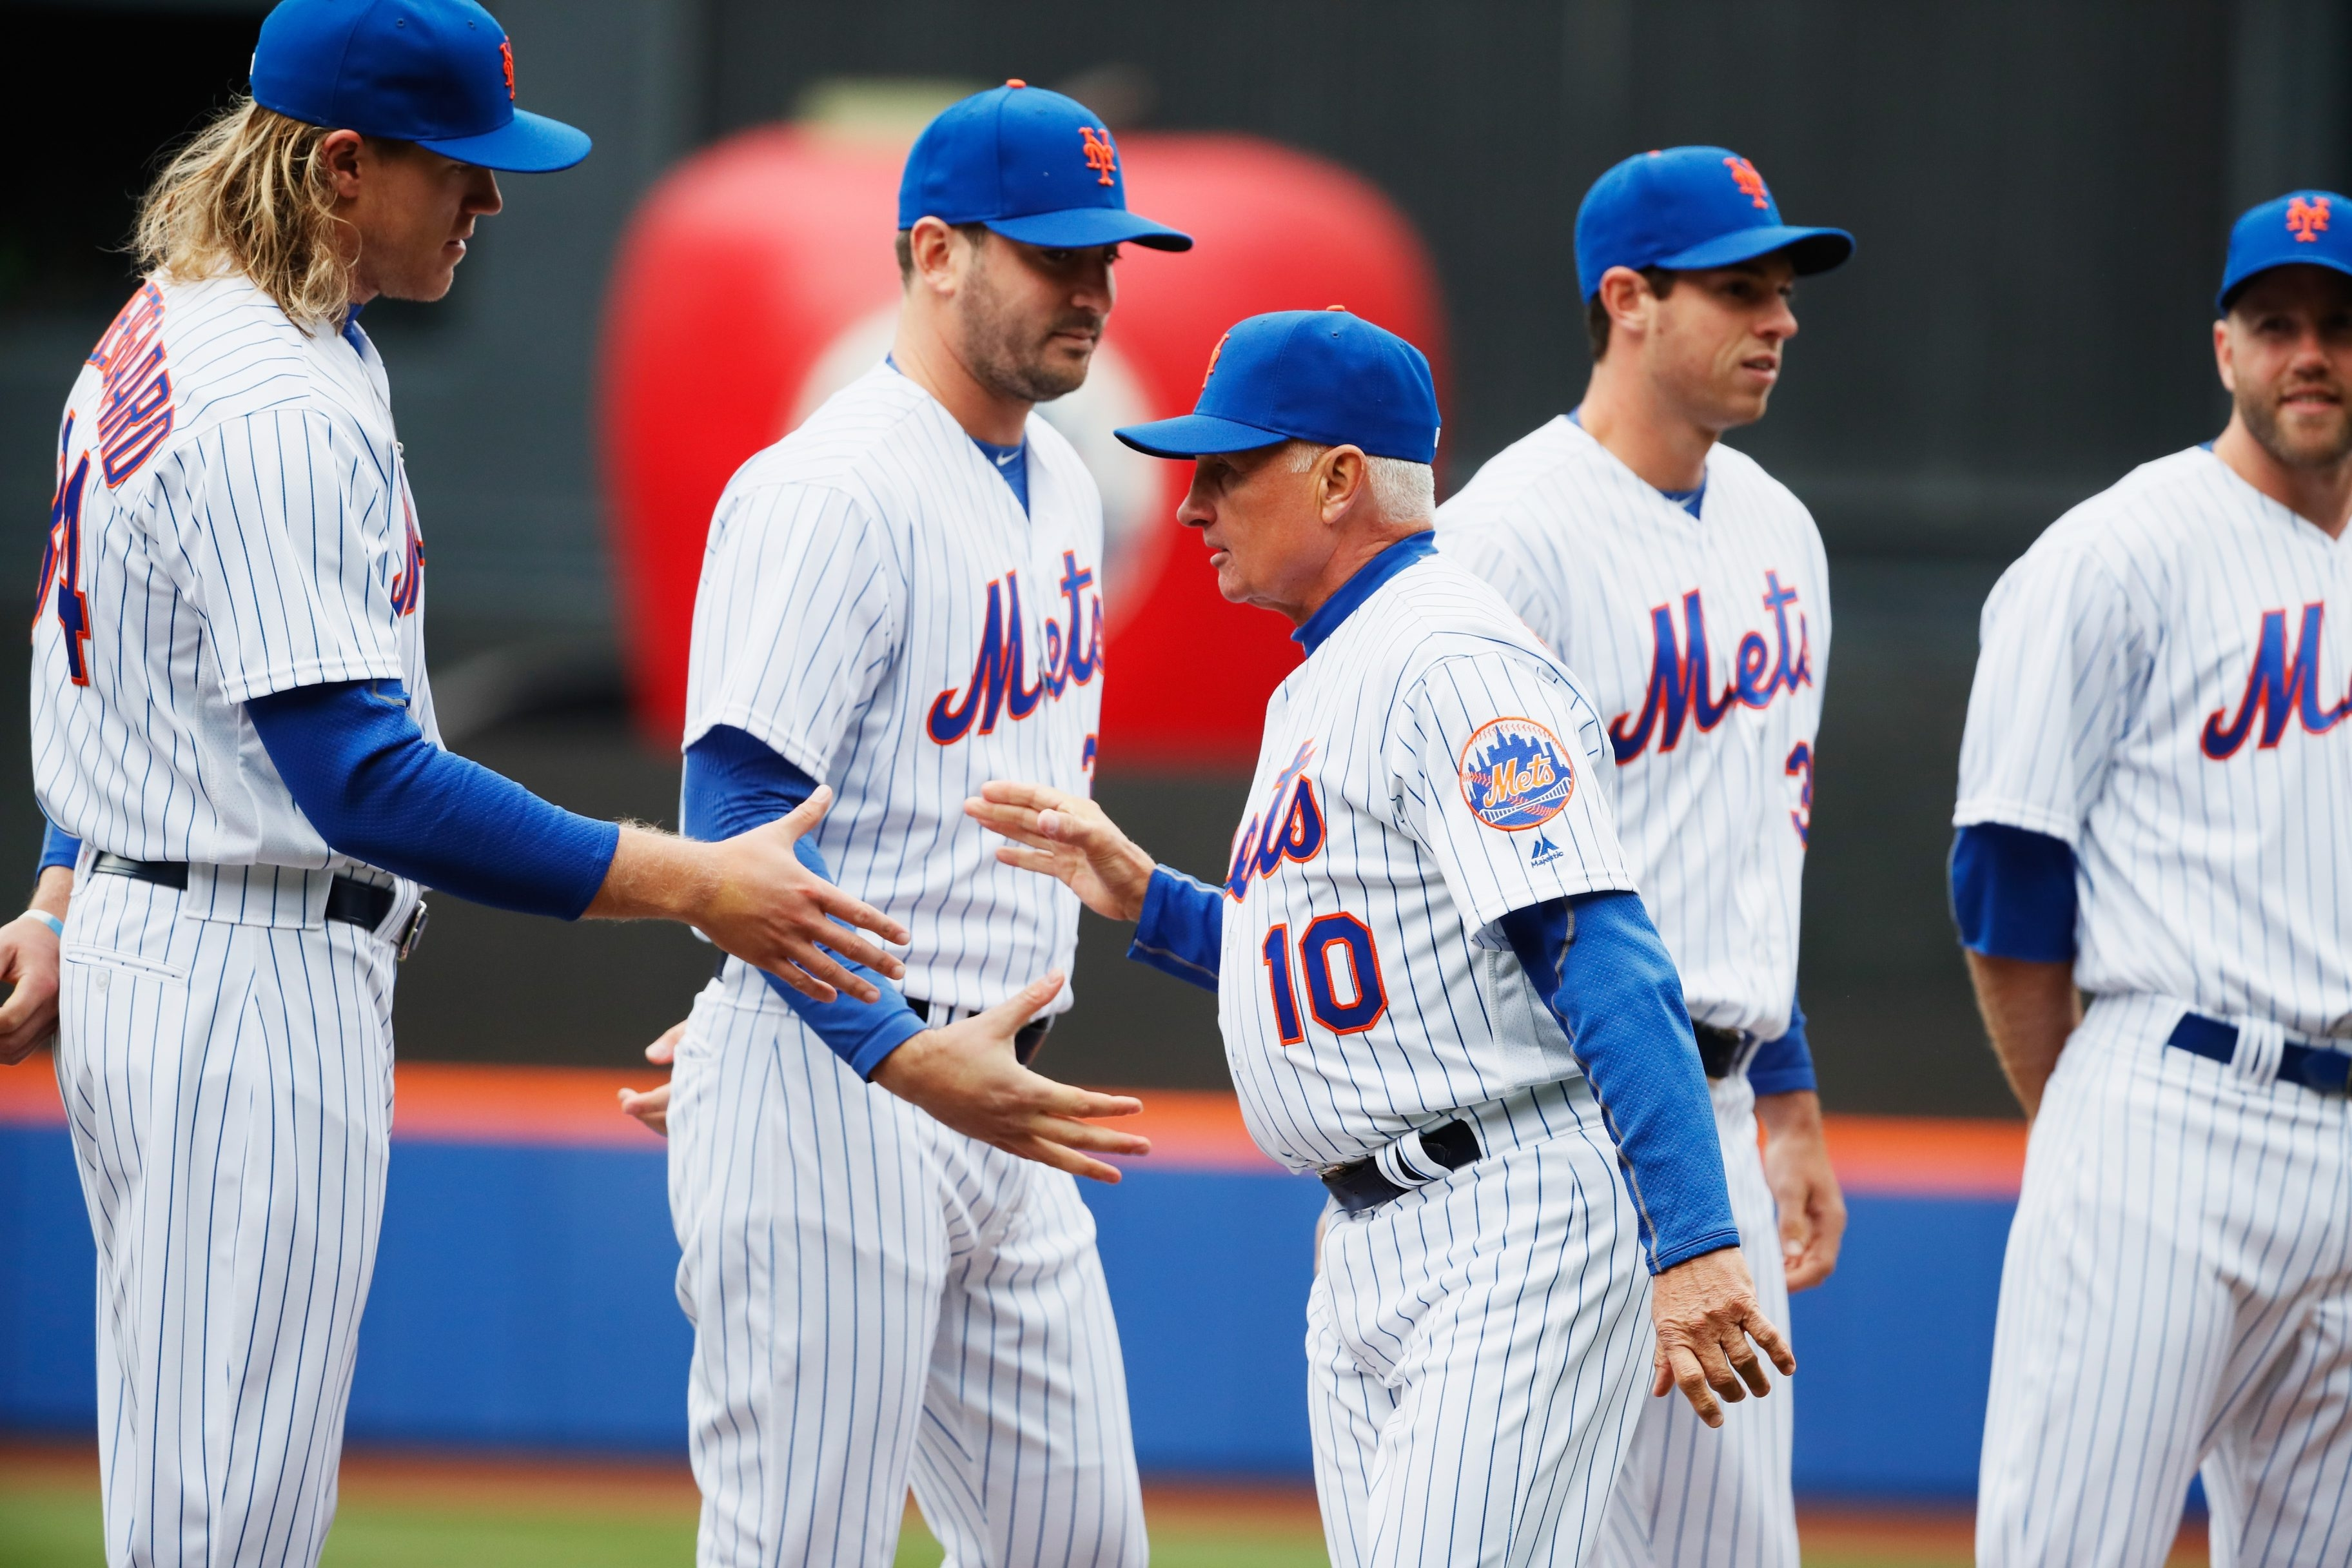 Manager Terry Collins admits he heard the criticisms that accompanied the Mets' slow start.